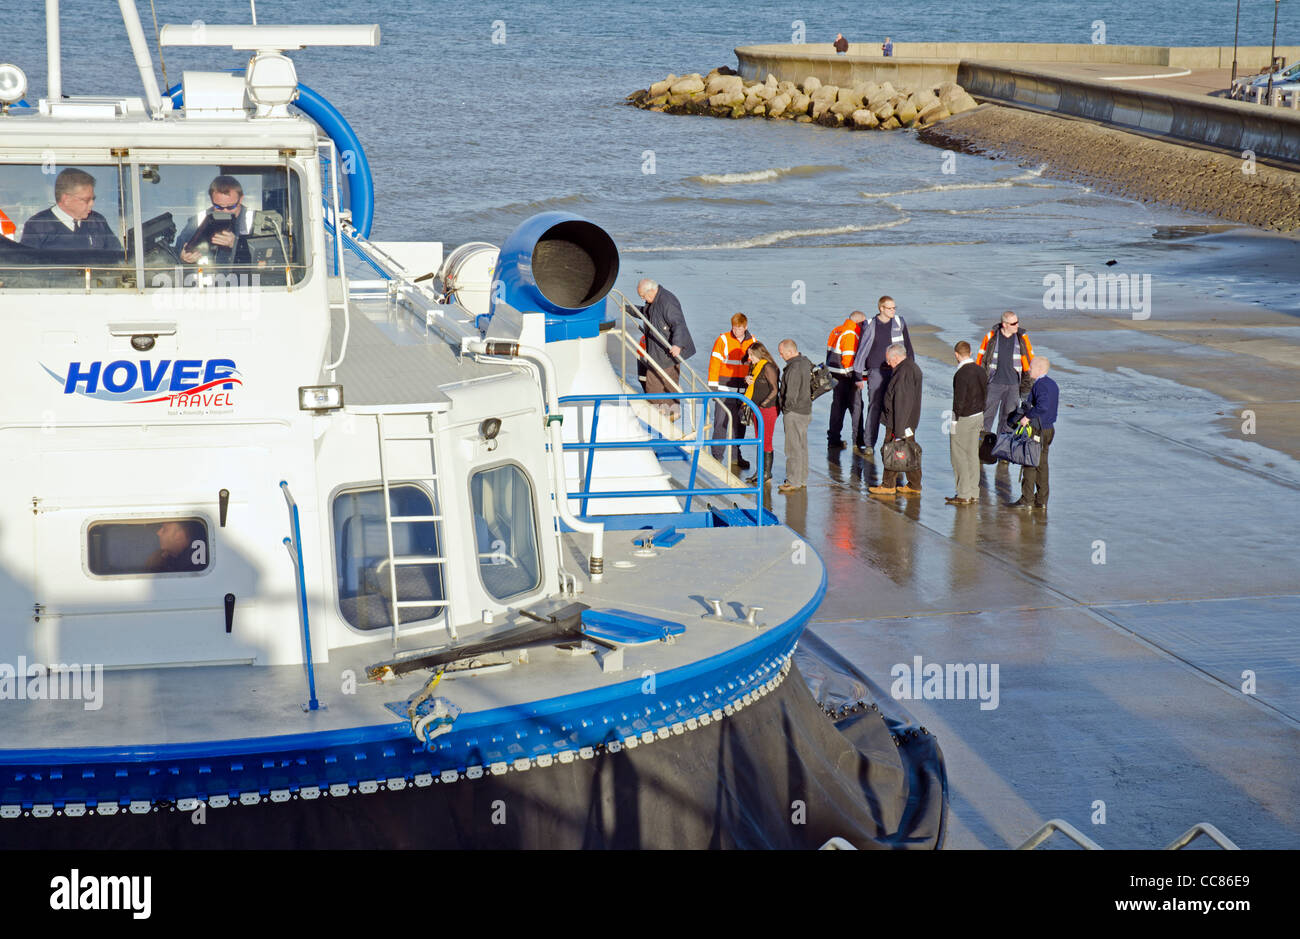 Passengers boarding a Hovertravel hovercraft on the slipway at Ryde, Isle of Wight, England, UK. - Stock Image